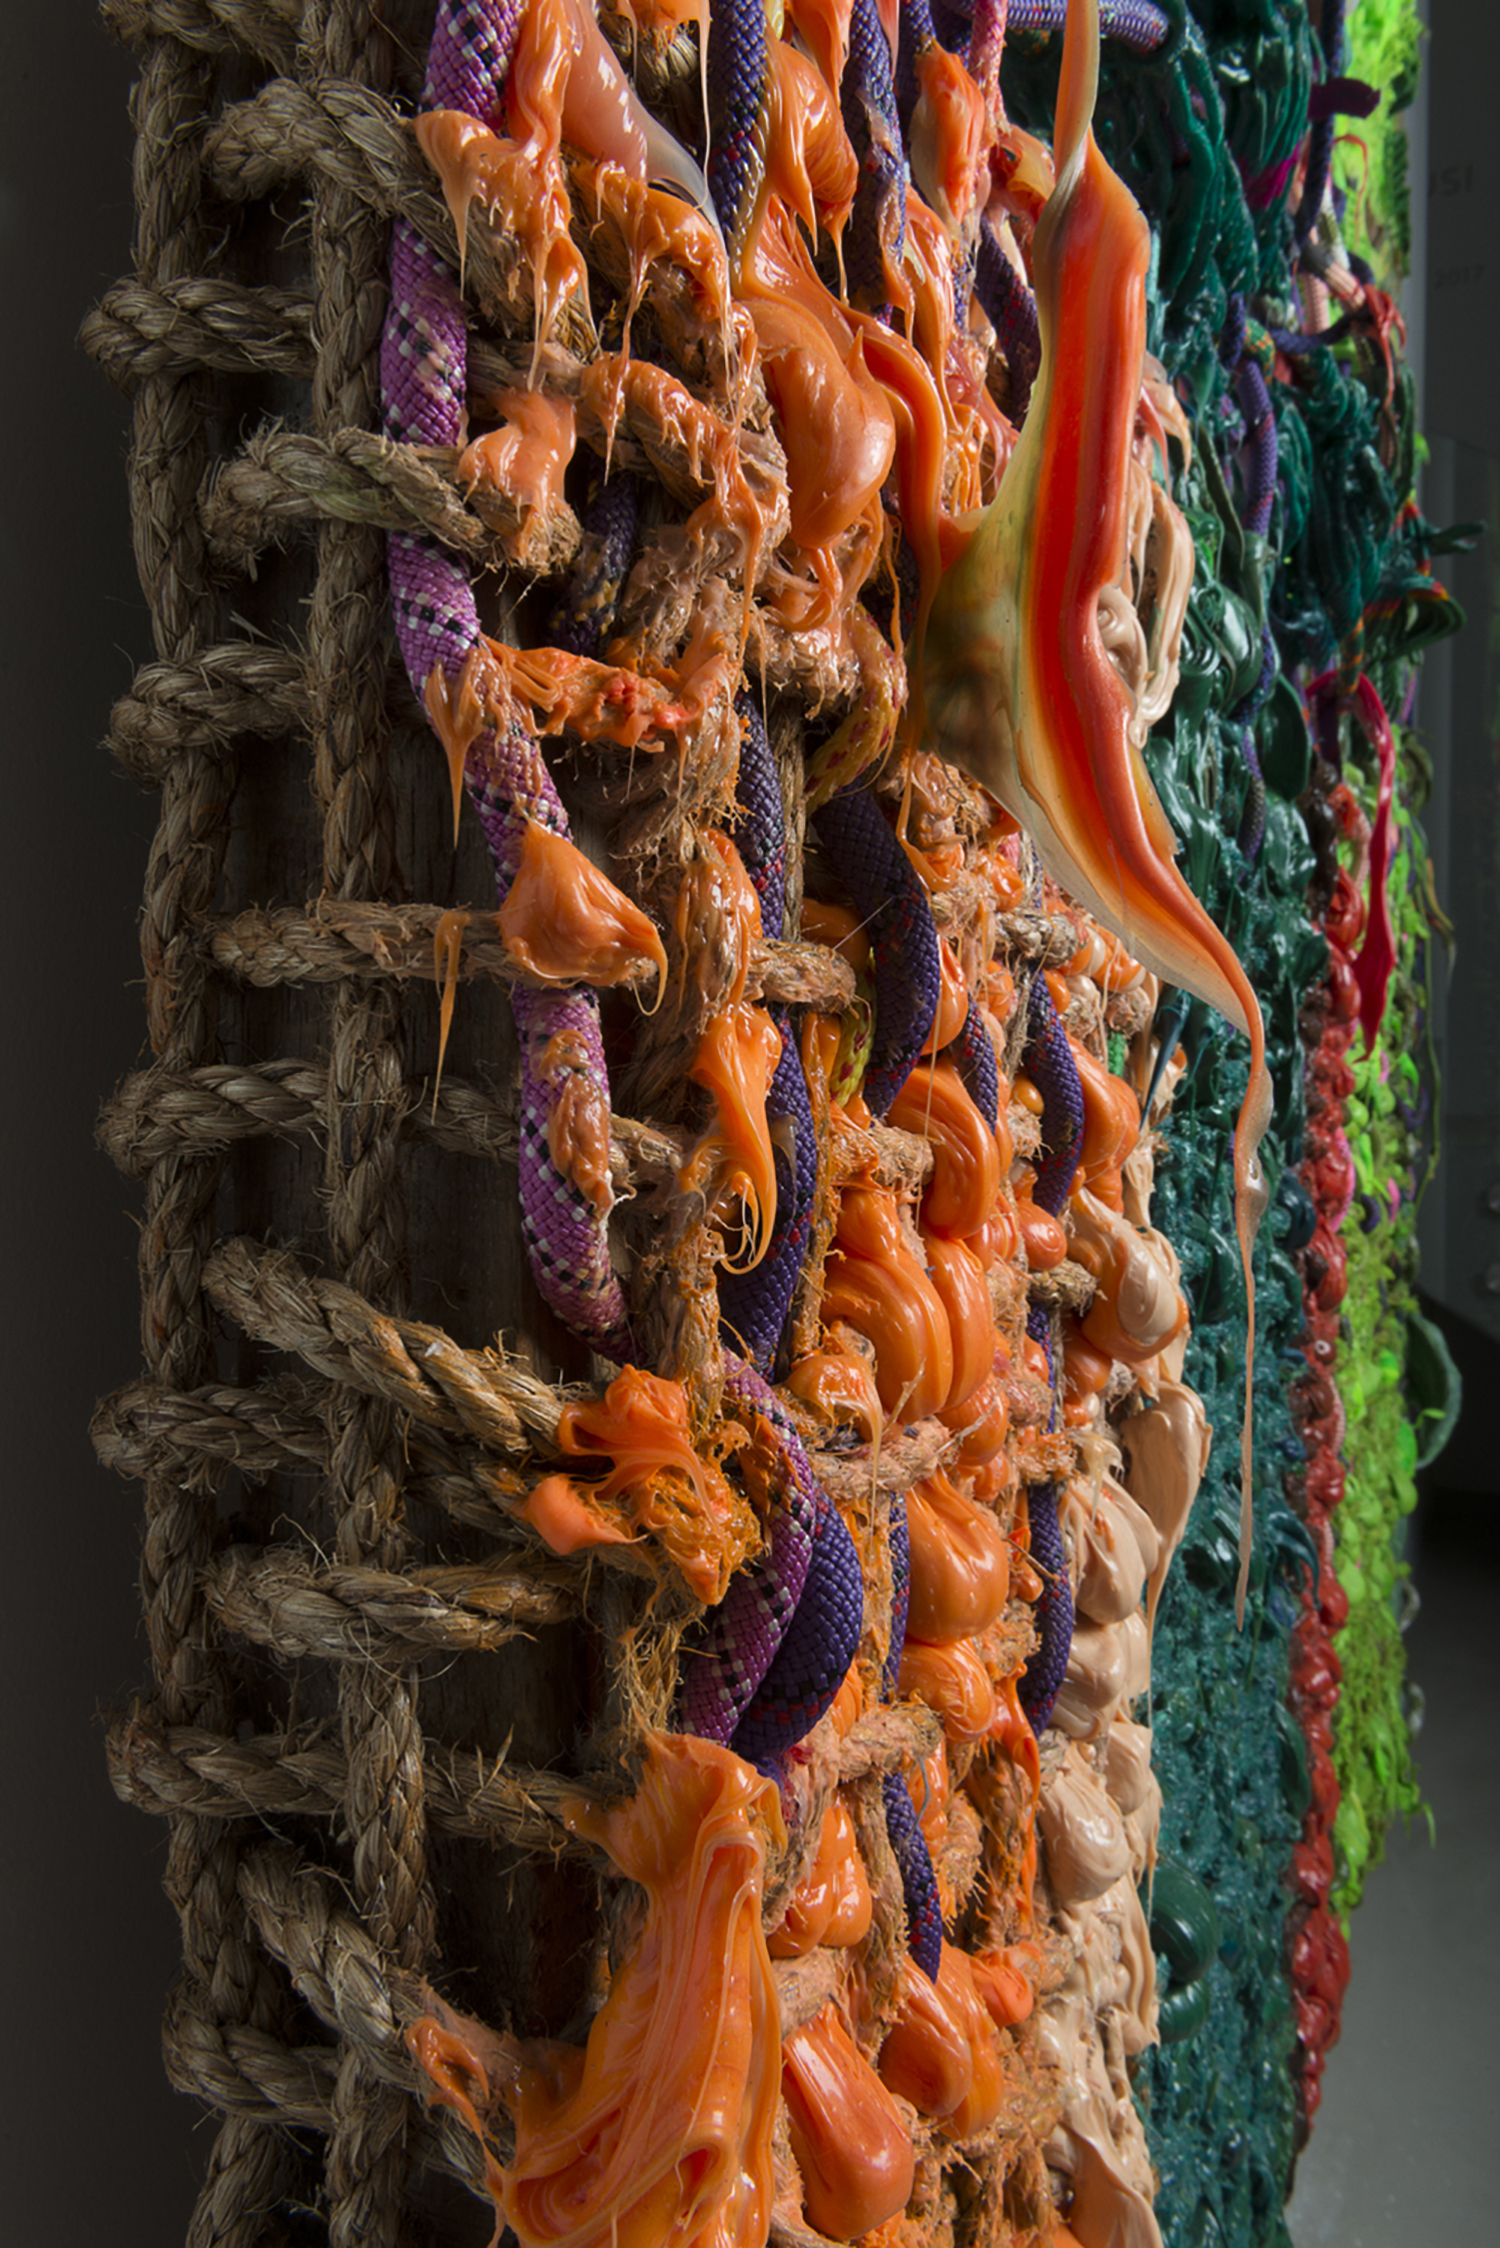 Re-accomodation Abstract Paintant, 2016, (detail)  190.5 x 157.48 x 20.32 cm | 75 x 62 x 8 in  Hand woven manilla rope, climbing rope, alkyd paint, silicone, wood, 3d printed plastic